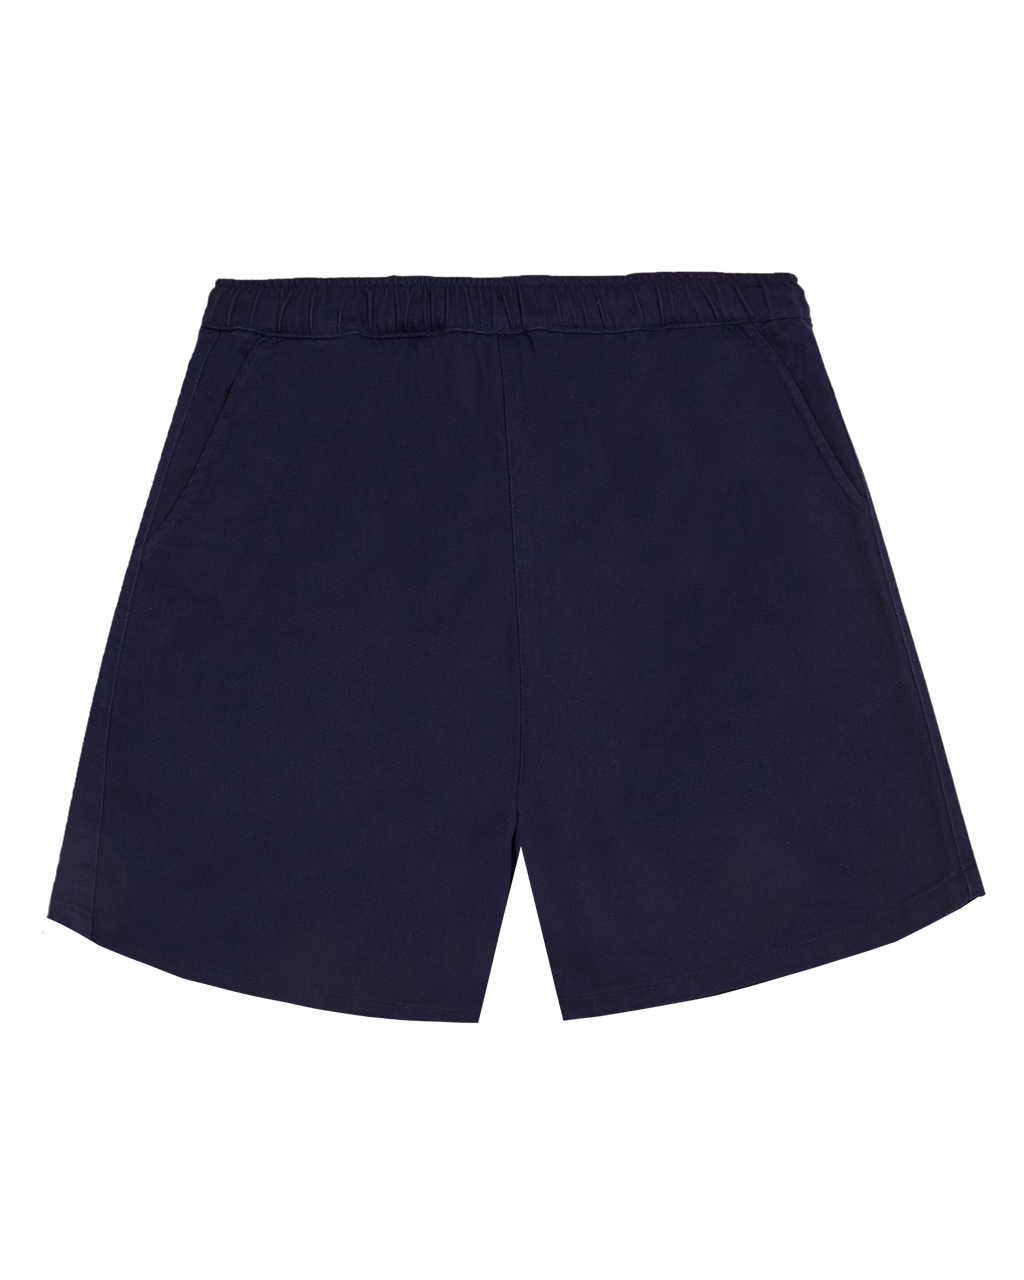 NAVY COTTON WALK SHORTS